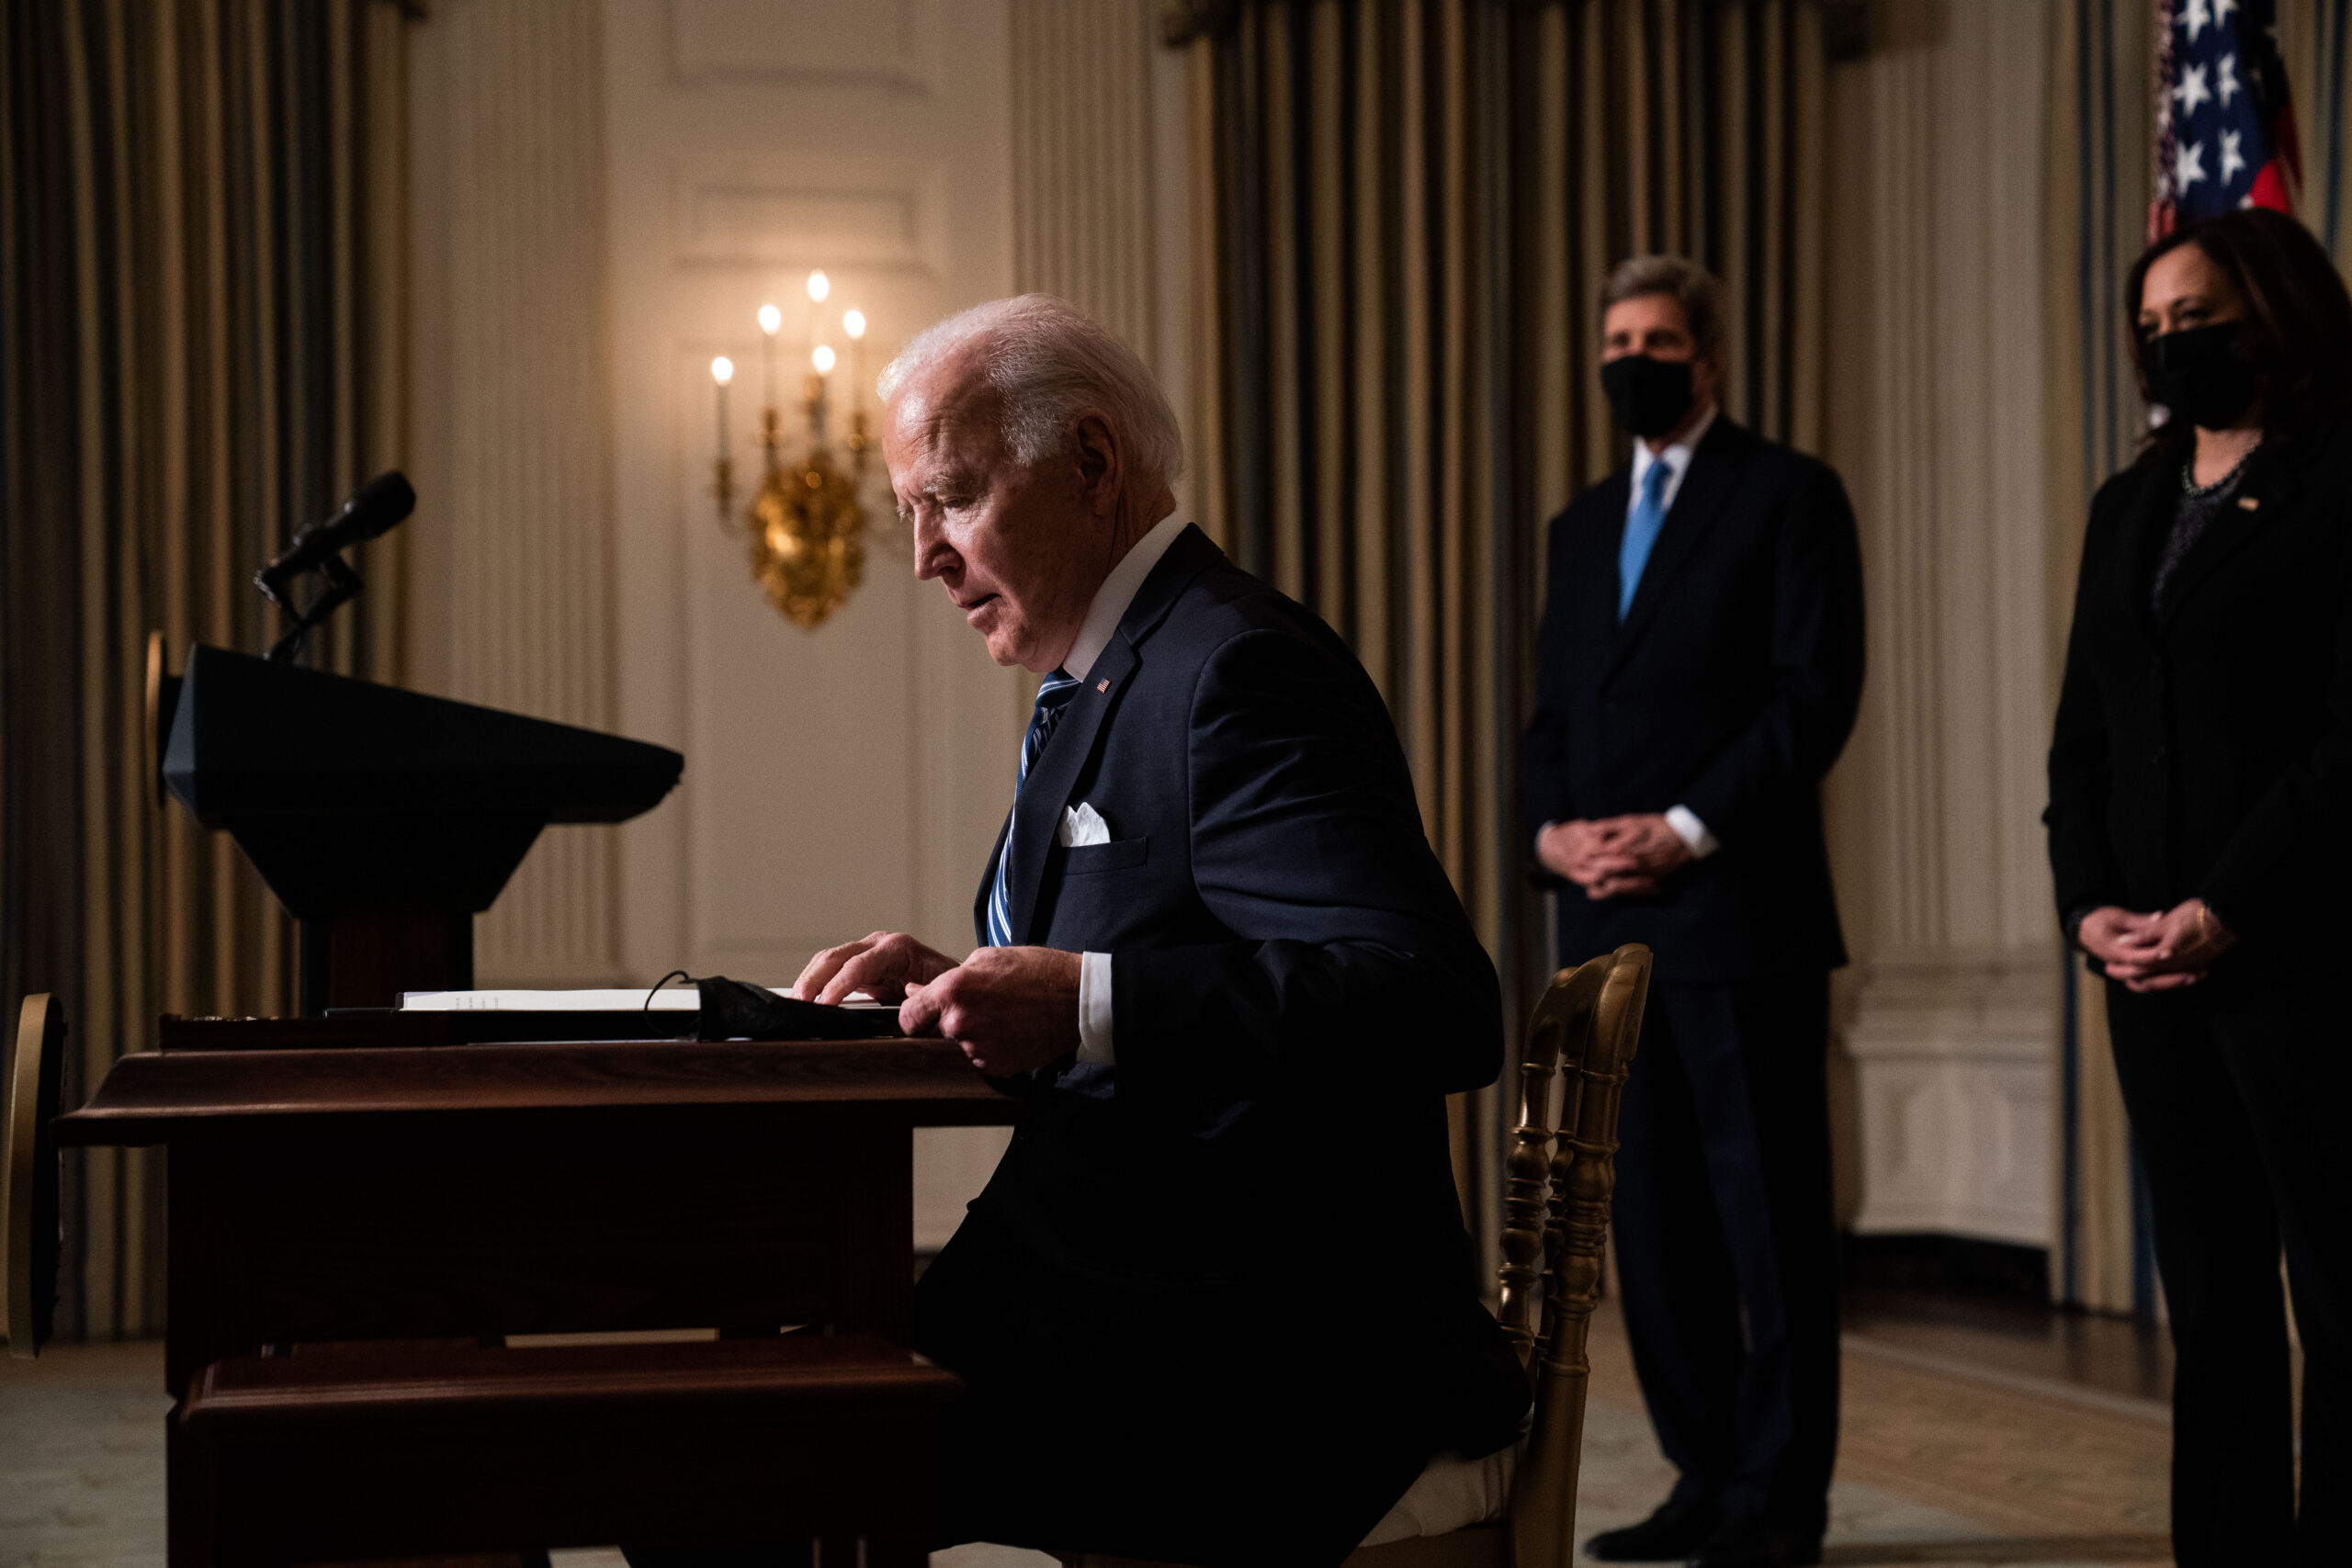 U.S. President Joe Biden prepares to sign executive orders after speaking about climate change issues in the State Dining Room of the White House on January 27, 2021 in Washington, DC. President Biden signed several executive orders related to the climate change crisis on Wednesday, including one directing a pause on new oil and natural gas leases on public lands. Also pictured, left to right, Special Presidential Envoy for Climate John Kerry and Vice President Kamala Harris. Credit: Anna Moneymaker-Pool/Getty Images